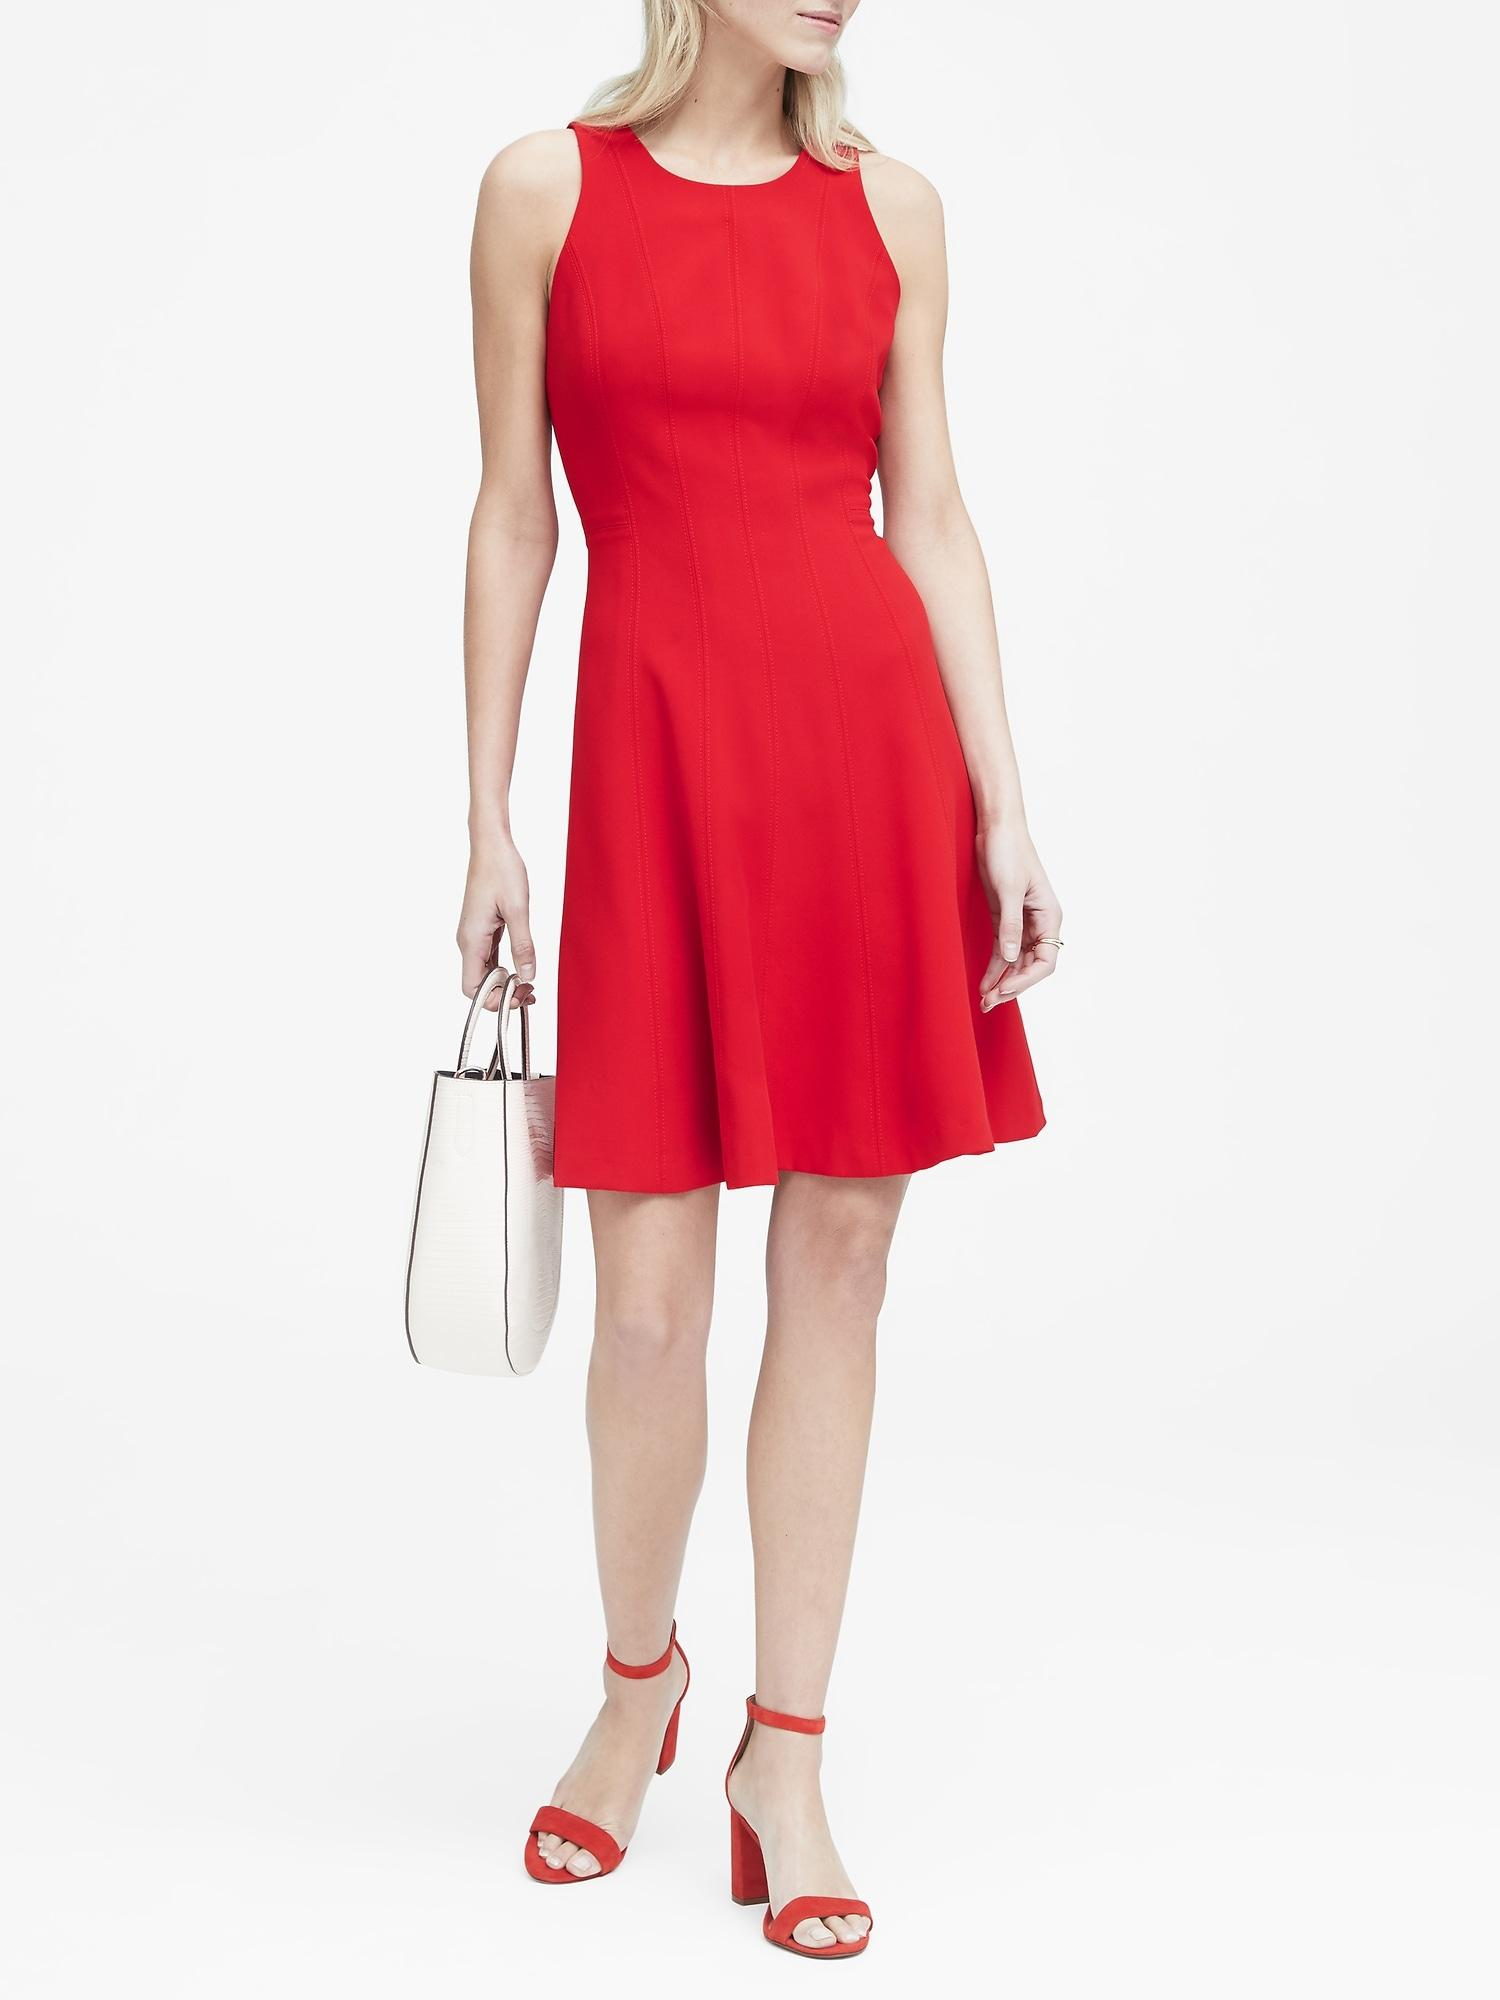 dceaa436d344 Lyst - Banana Republic Paneled Fit-and-flare Dress in Red